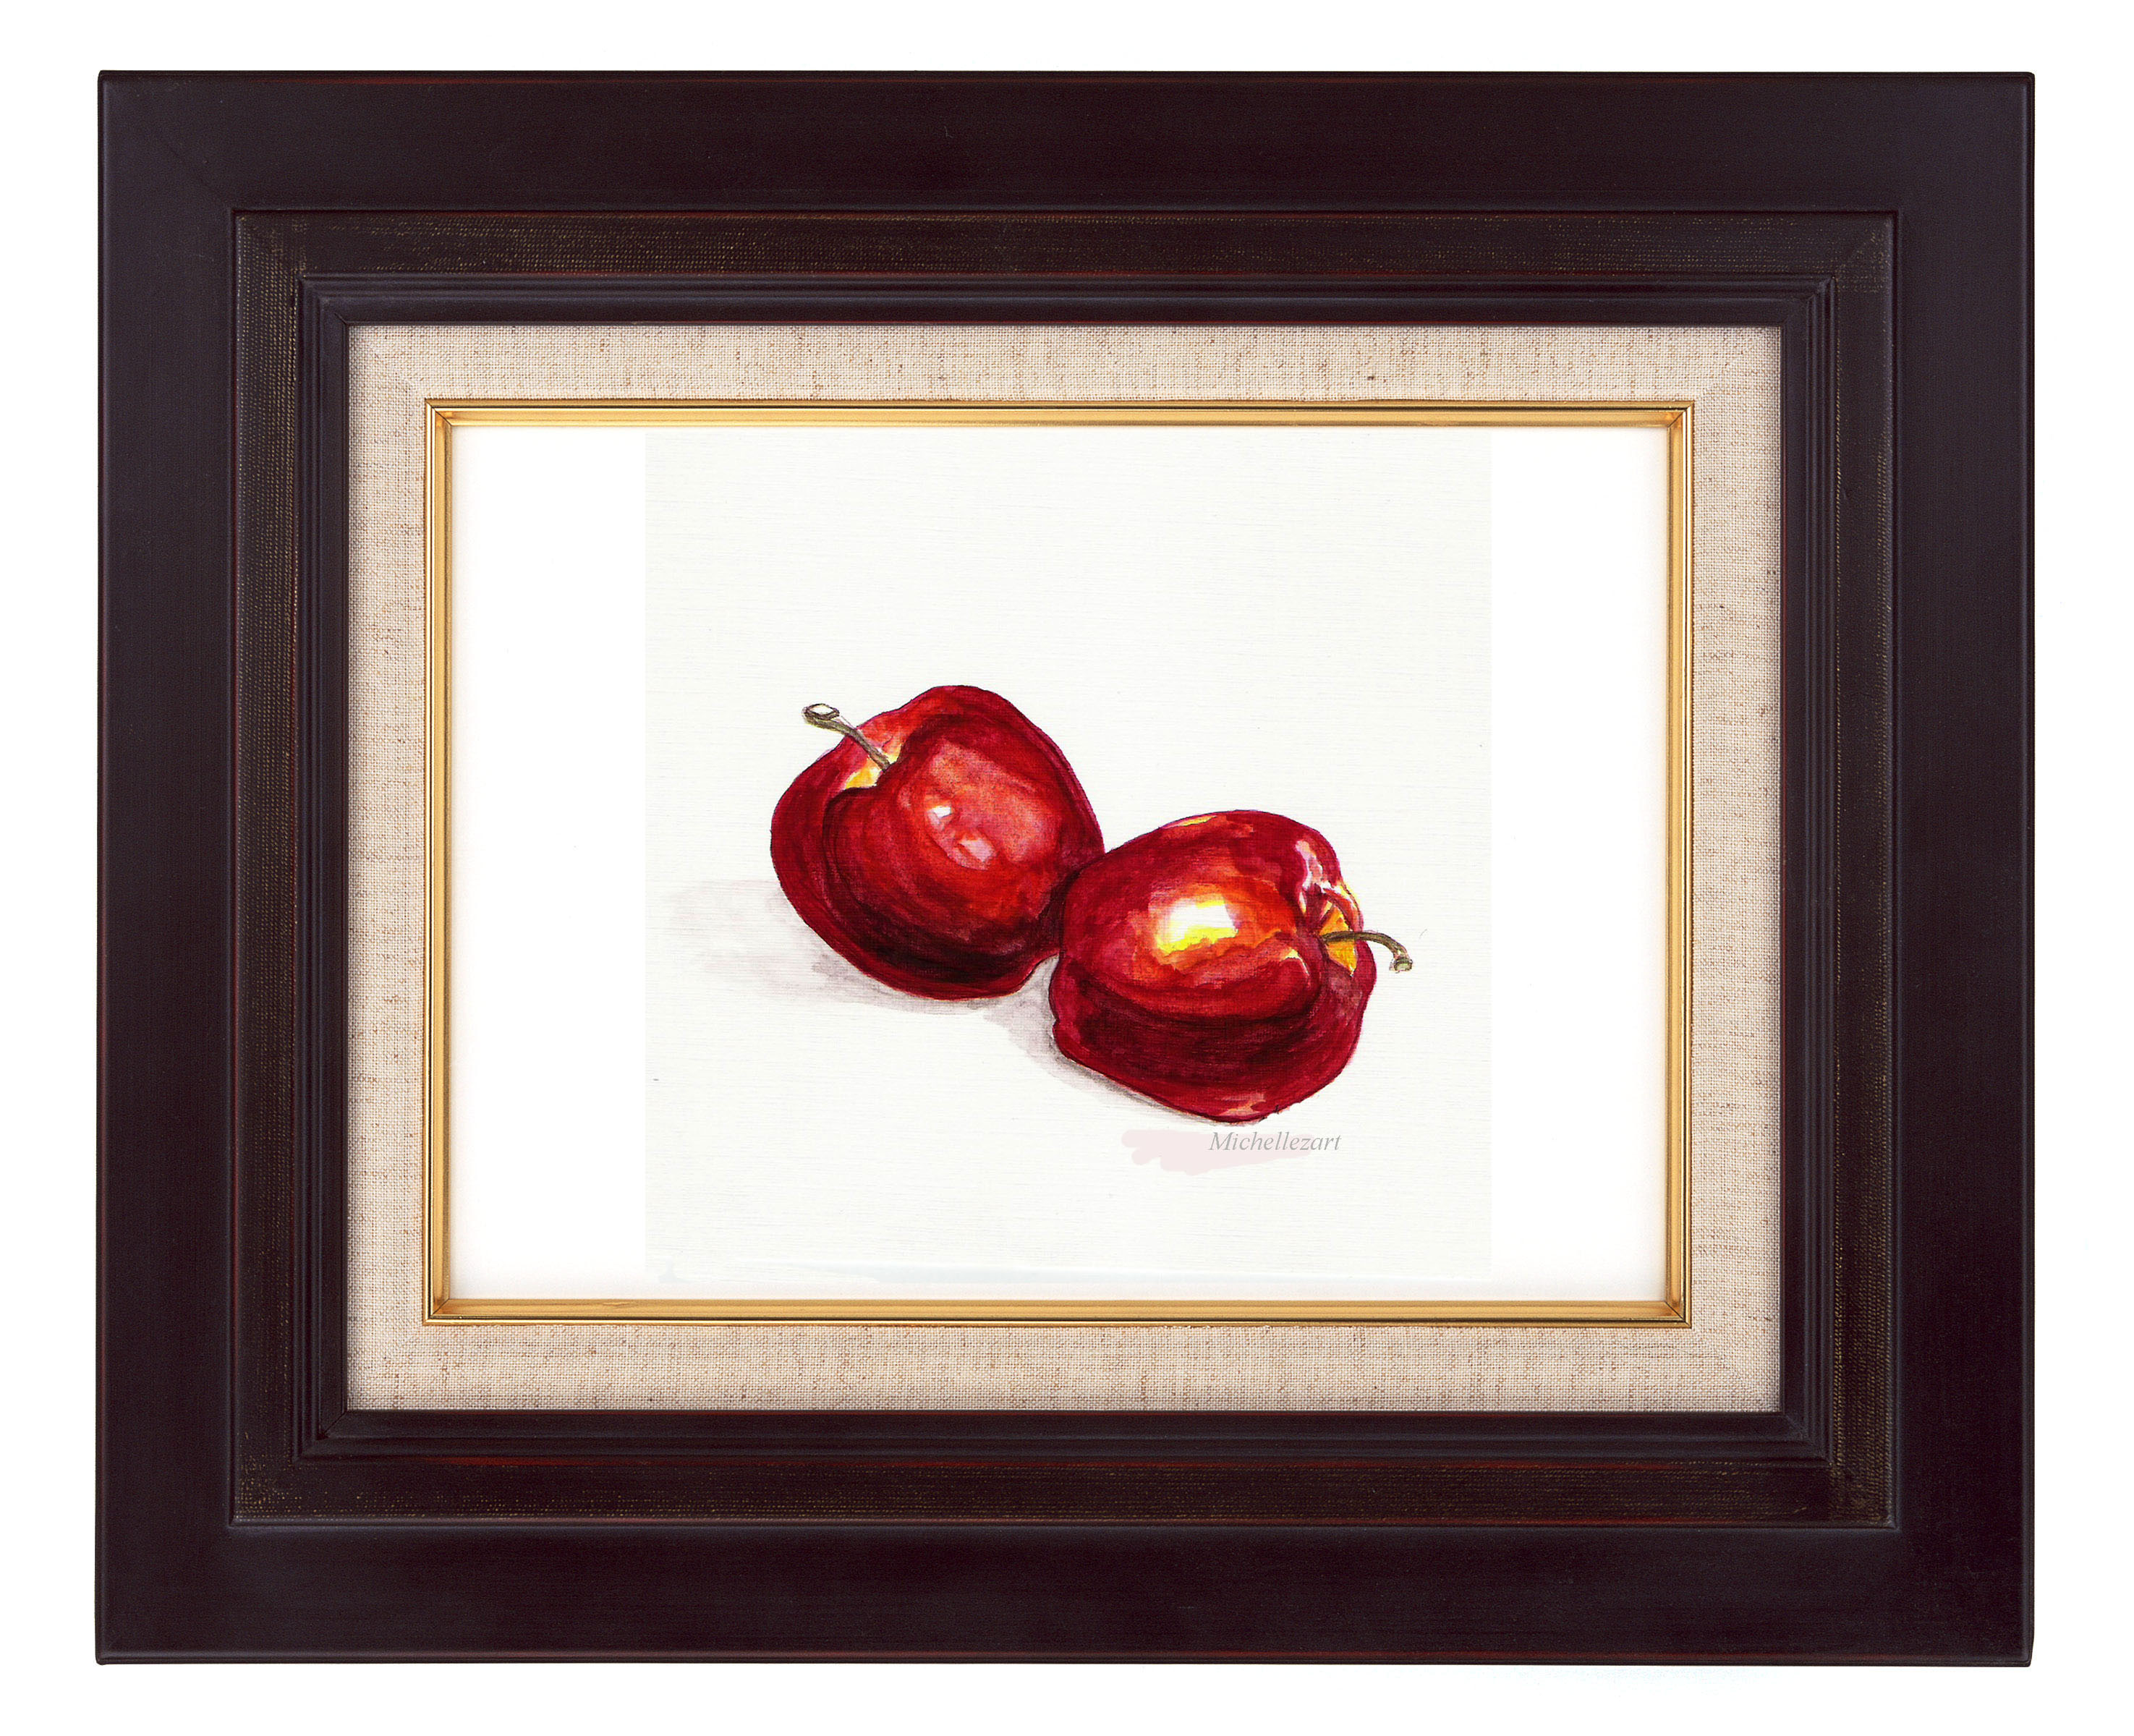 2 Red Apples